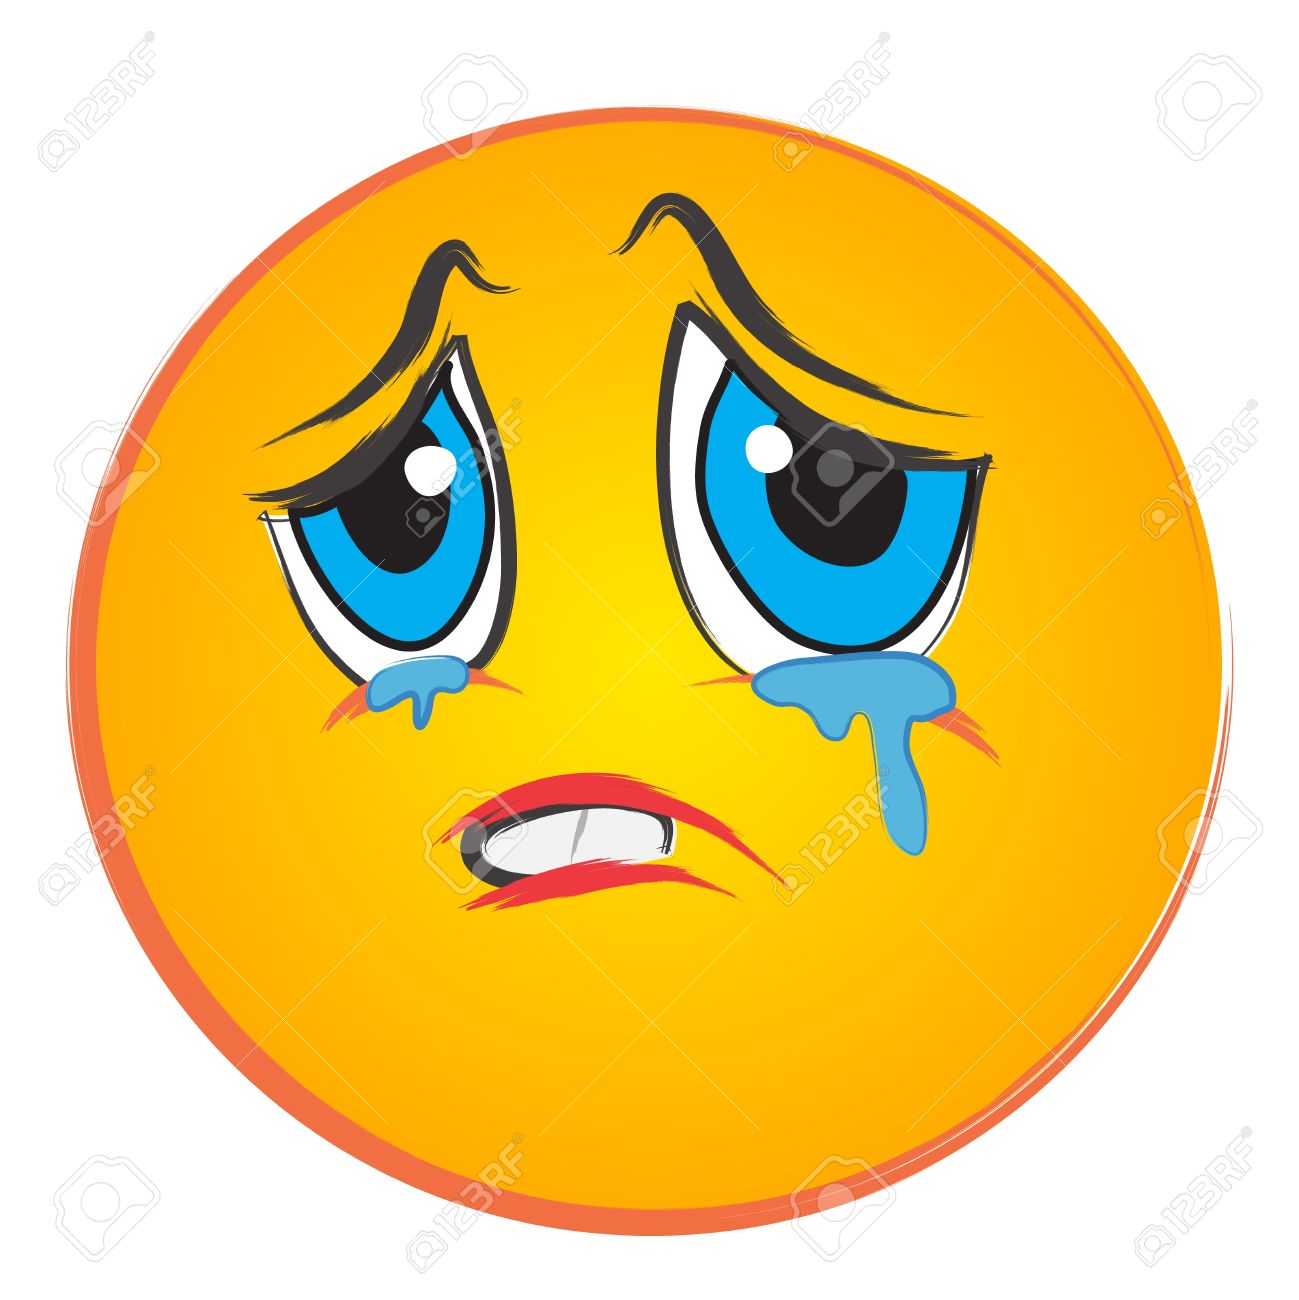 Sad Face With Tears Clipart